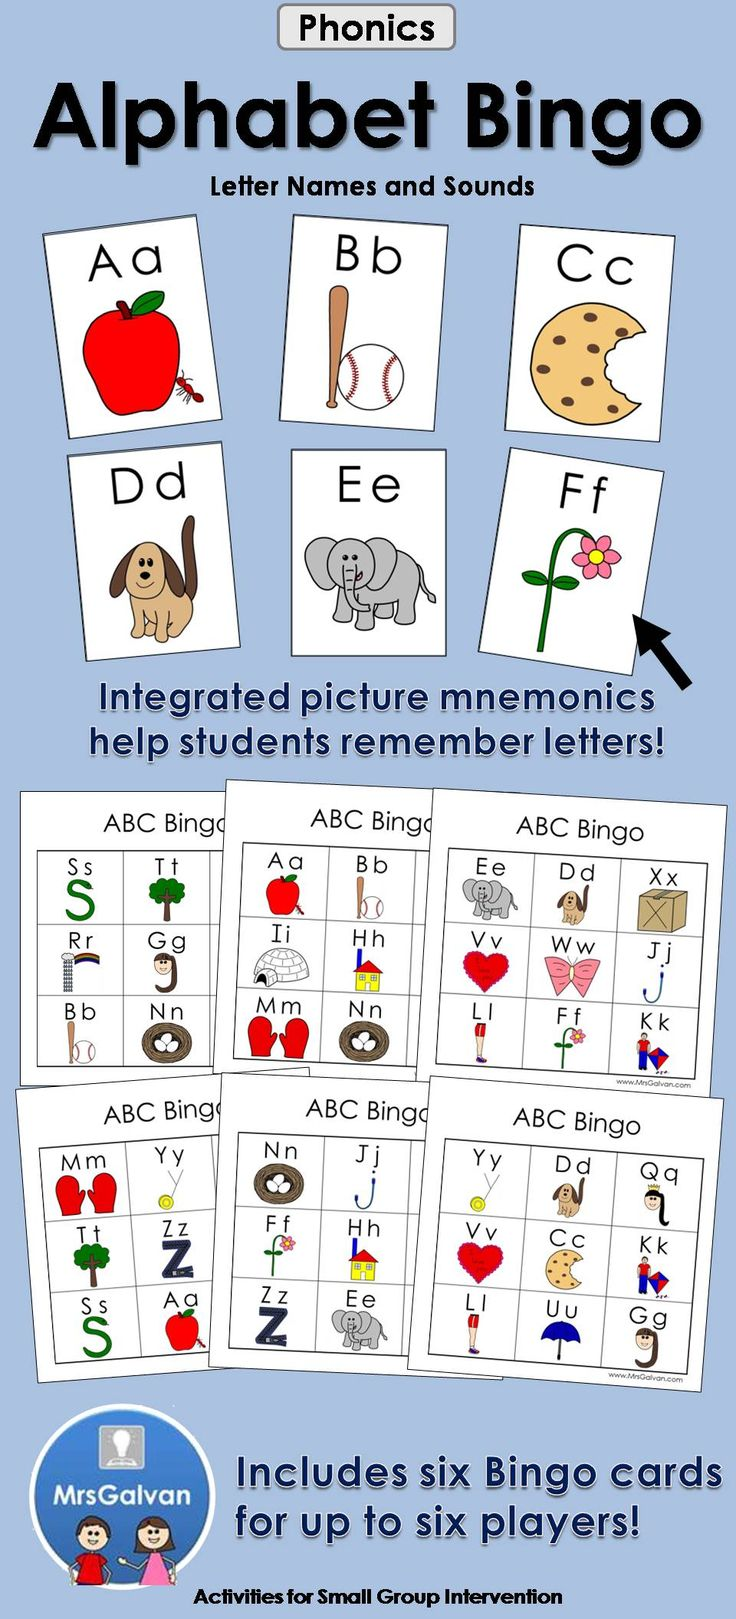 The Alphabet Bingo is a great way for children to learn letter names and sounds. It can quickly become a new literacy center your children will enjoy! The friendly pictures help students associate the initial sound with the letter. The bingo calling cards can also be used as flashcards. This bingo game is a fun way for students to learn. Bonus Alphabet Page: All of the letters in uppercase and lowercase with a key picture on one page!